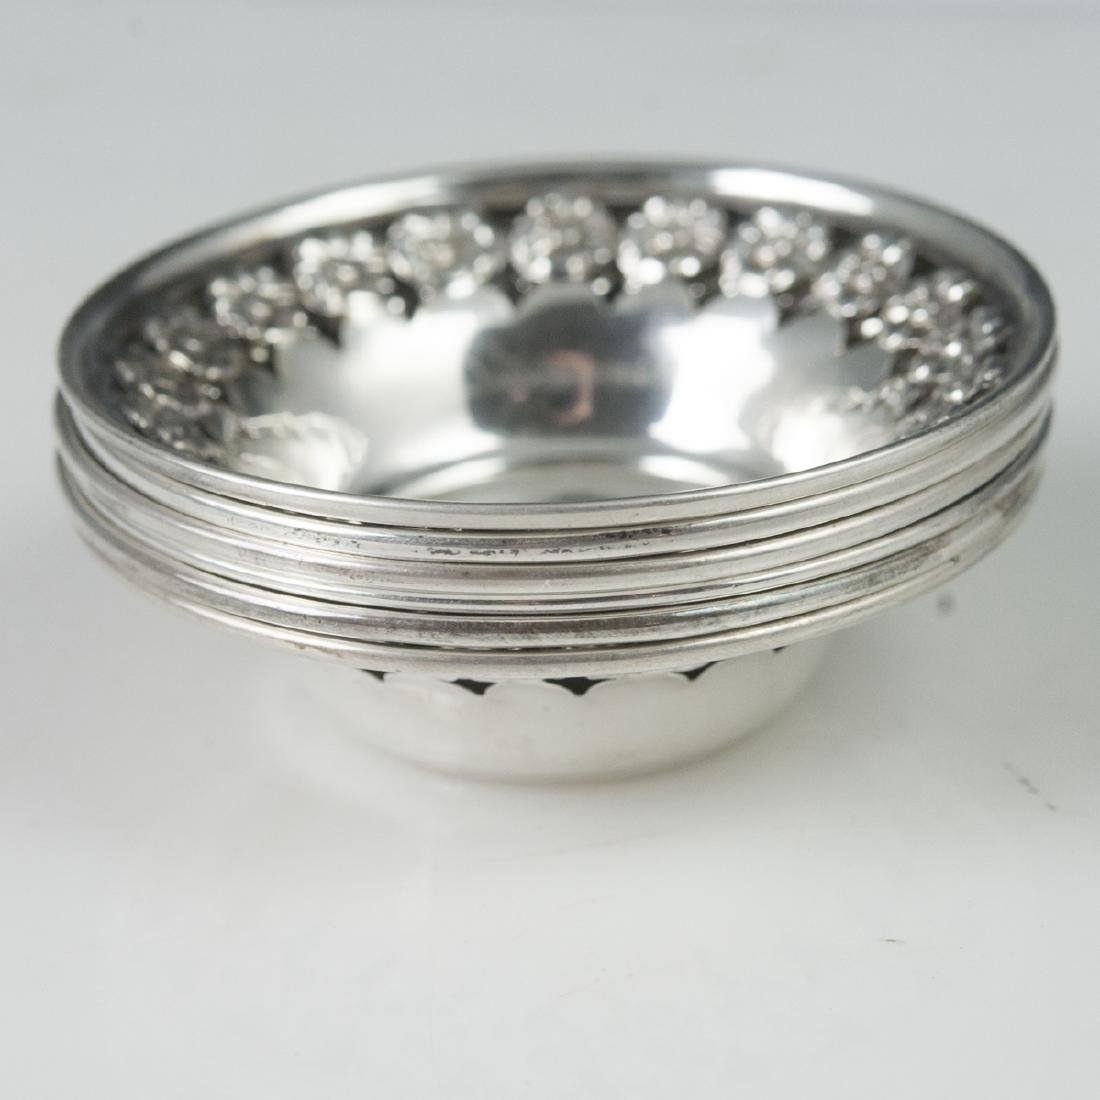 National Silver Co. Sterling Nut Dishes - 5